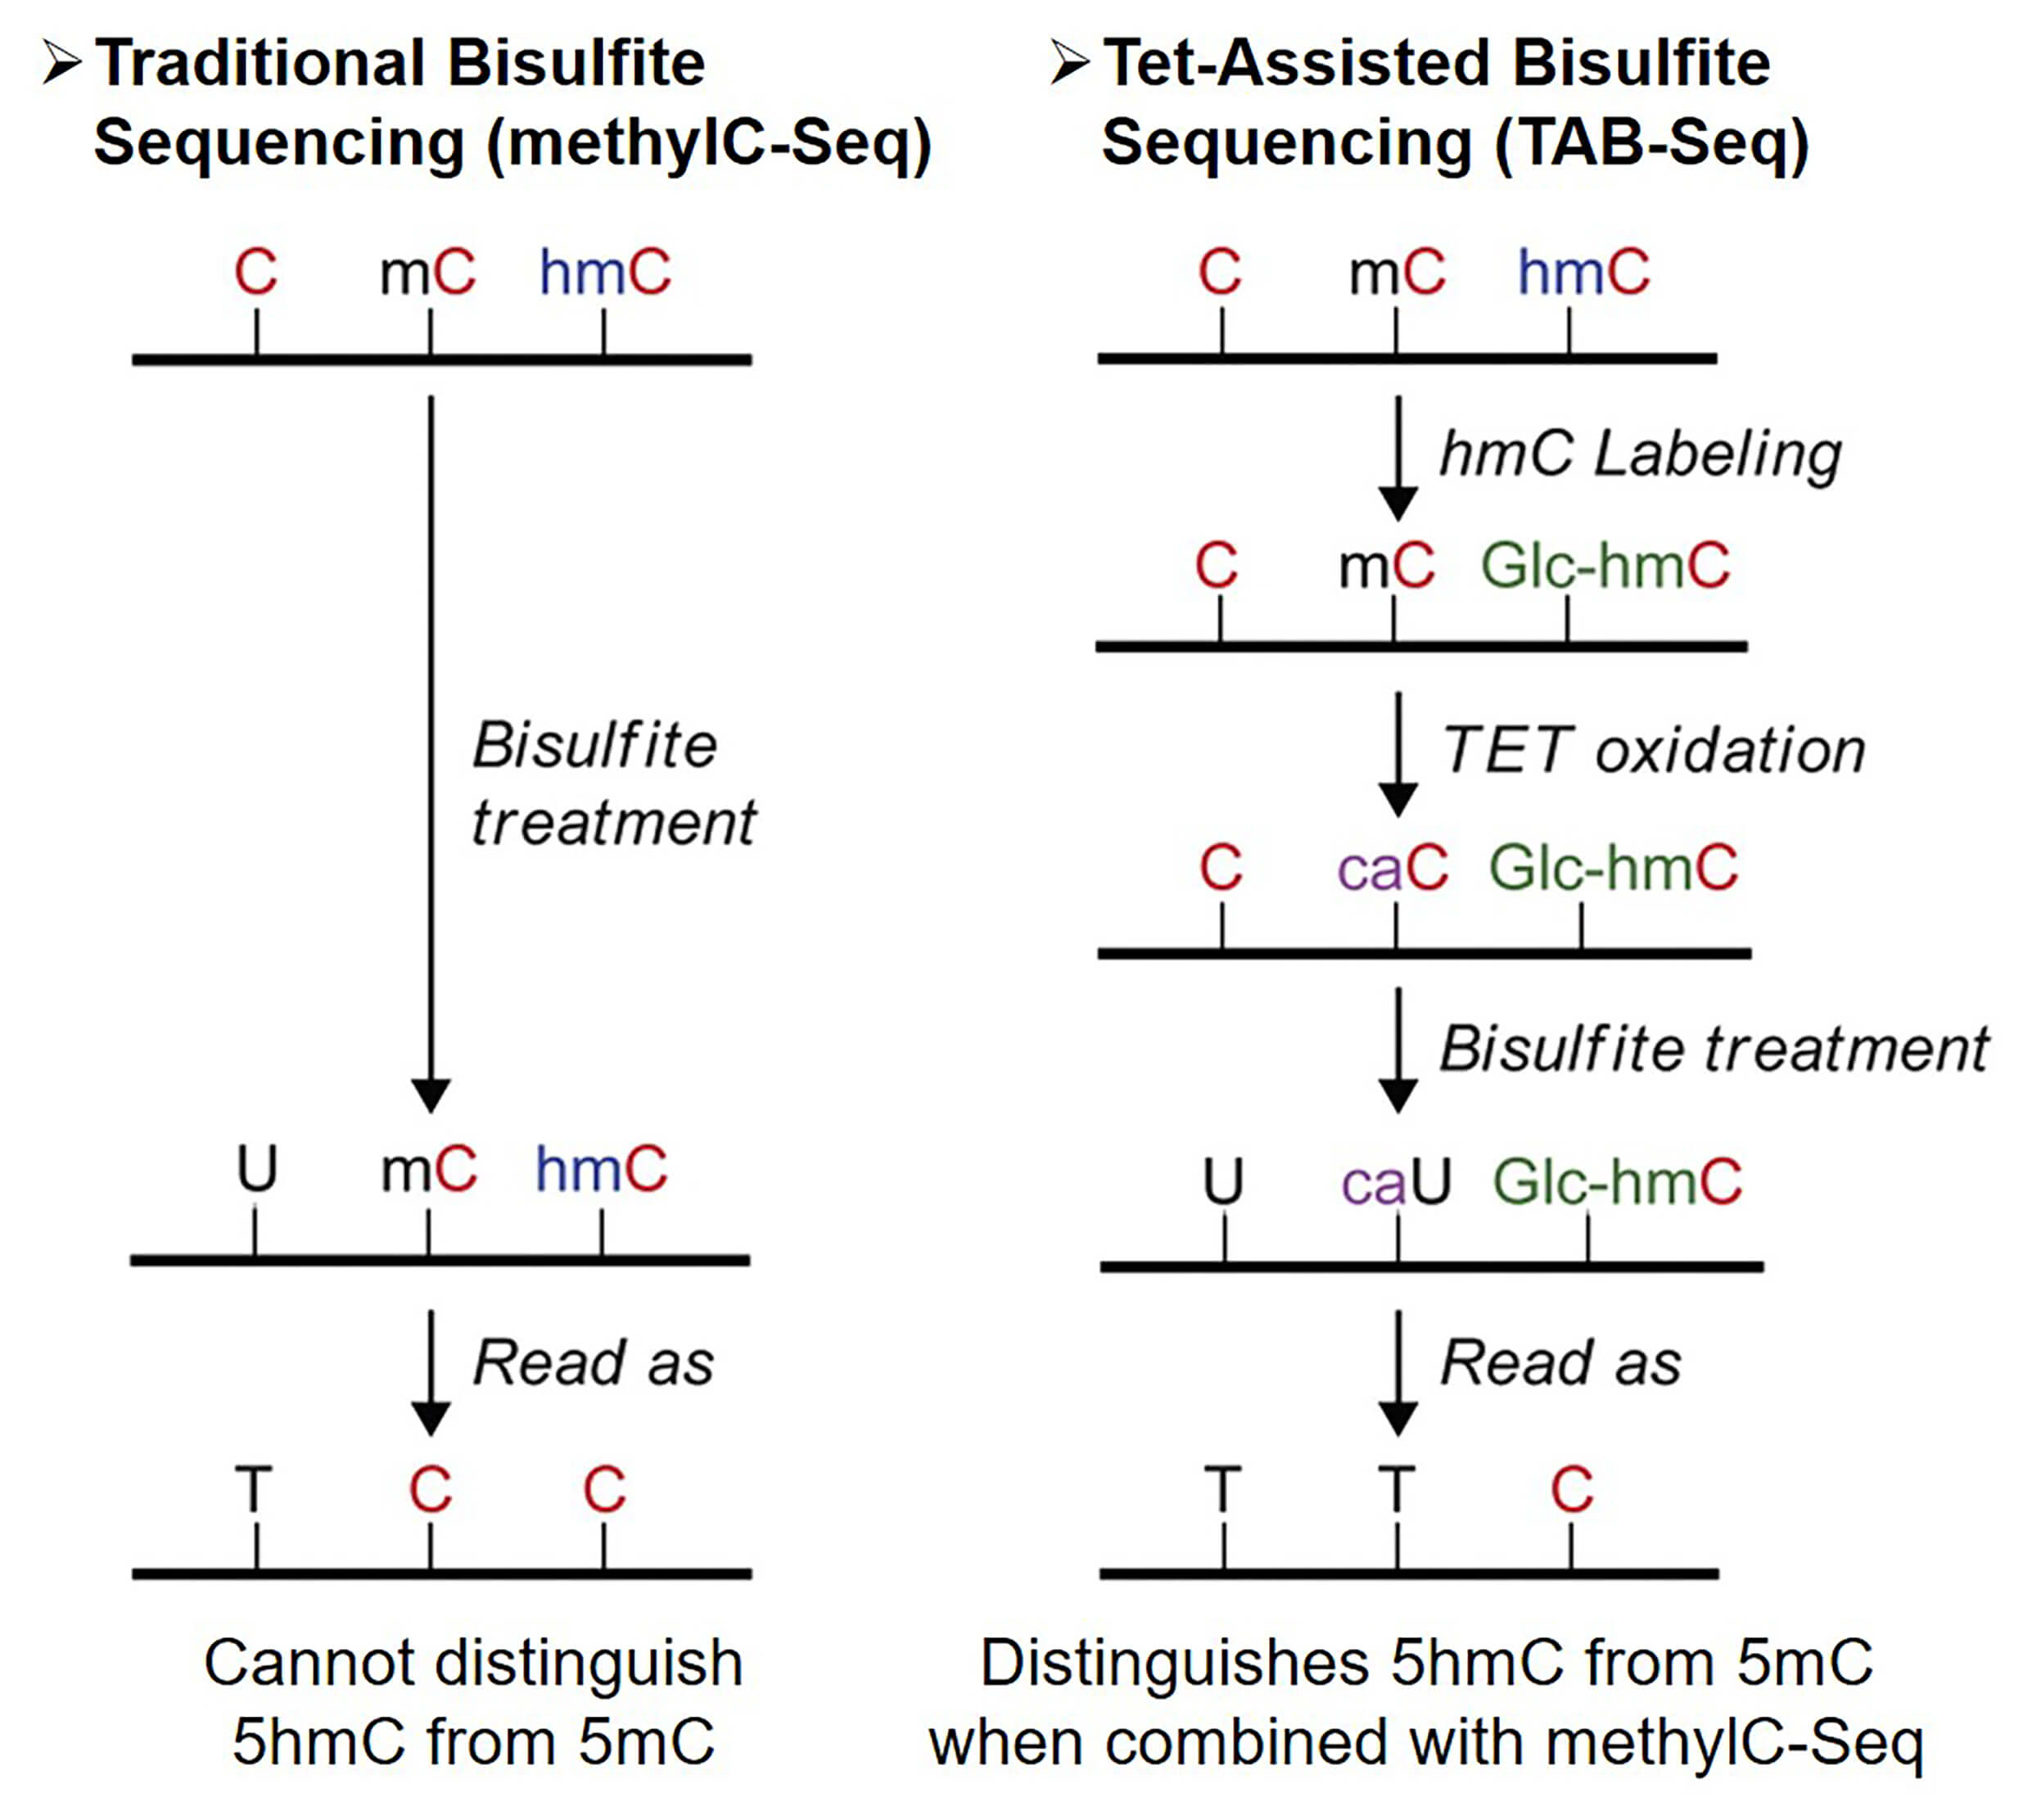 Overview of Tet-assisted bisulfite sequencing (TAB-Seq)